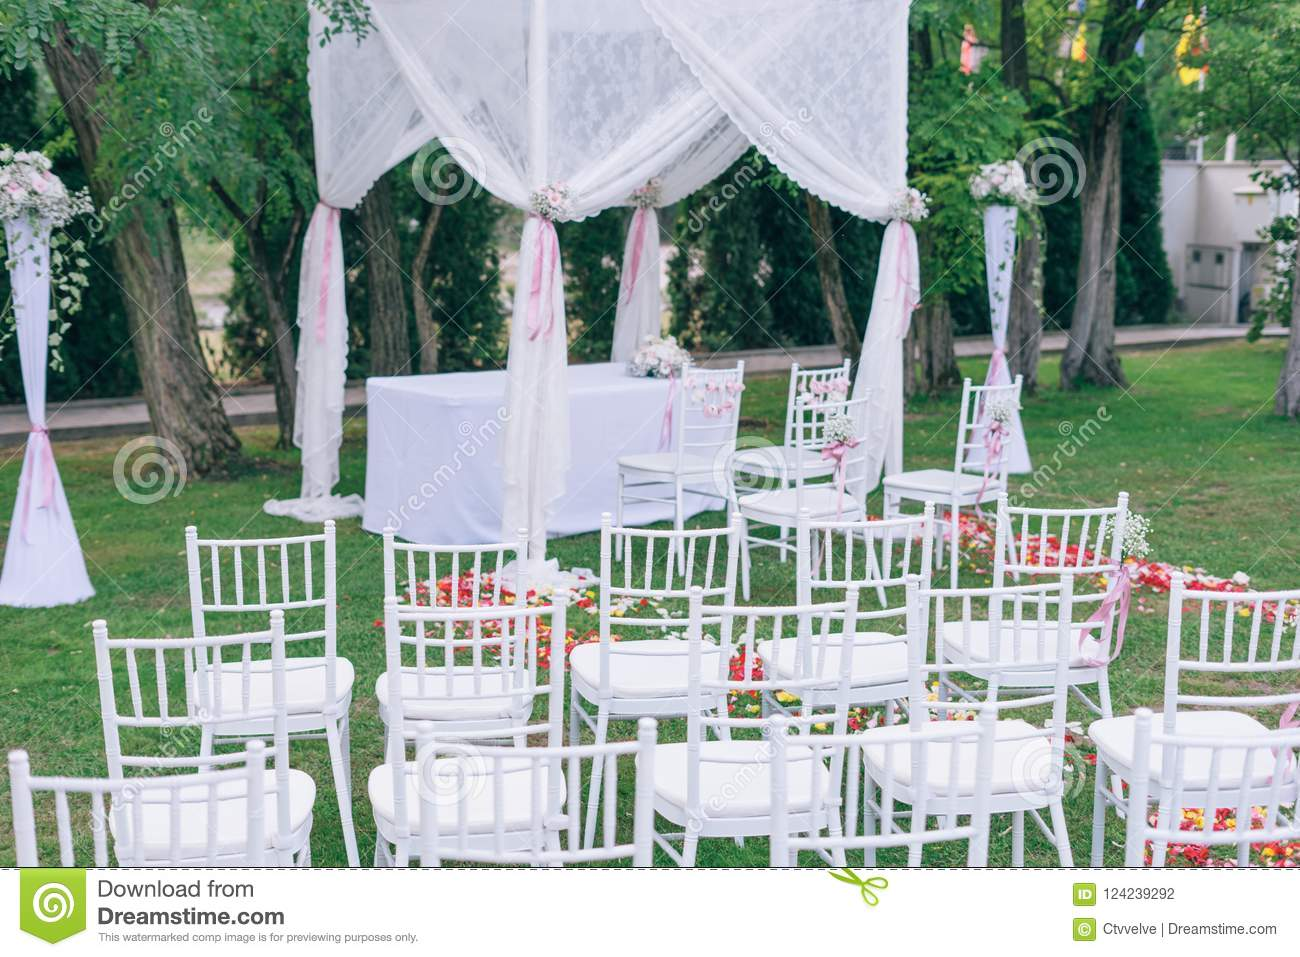 Wedding Or Ceremony Set Up In Garden, White Chairs Stock Photo